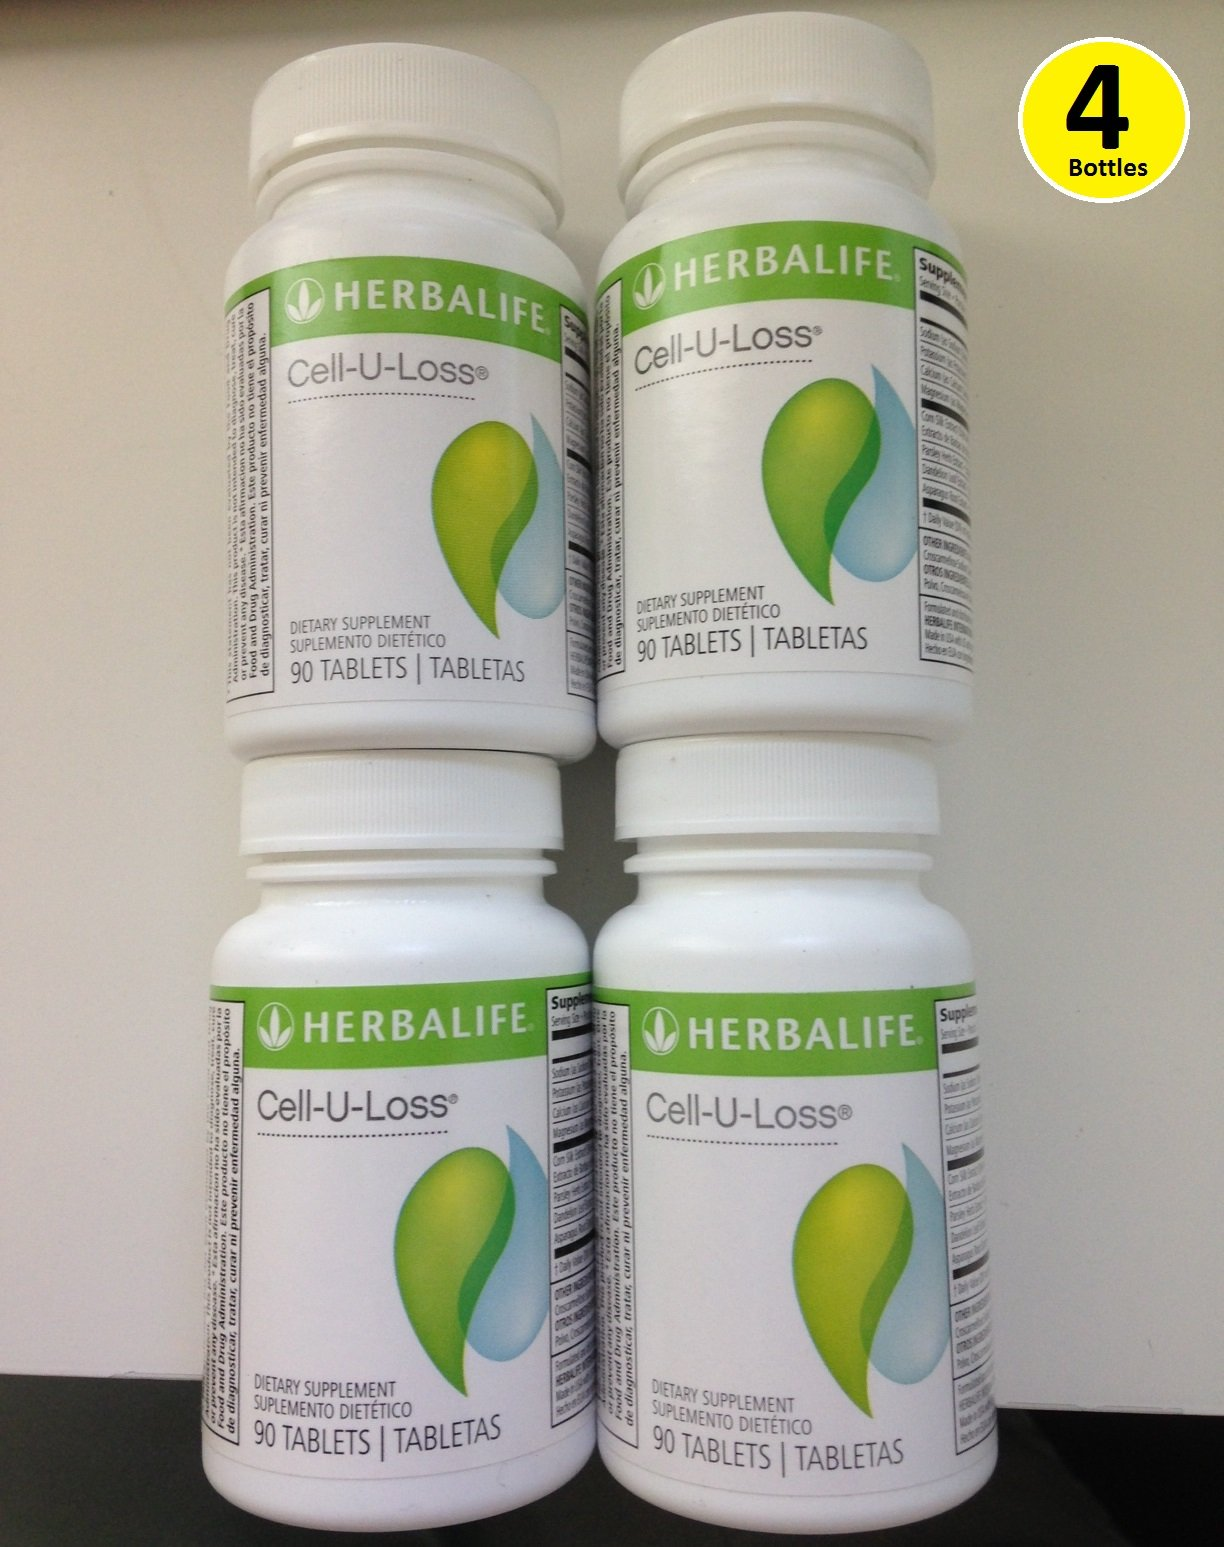 4 Herbalife Cell-u-loss for the Price of 2